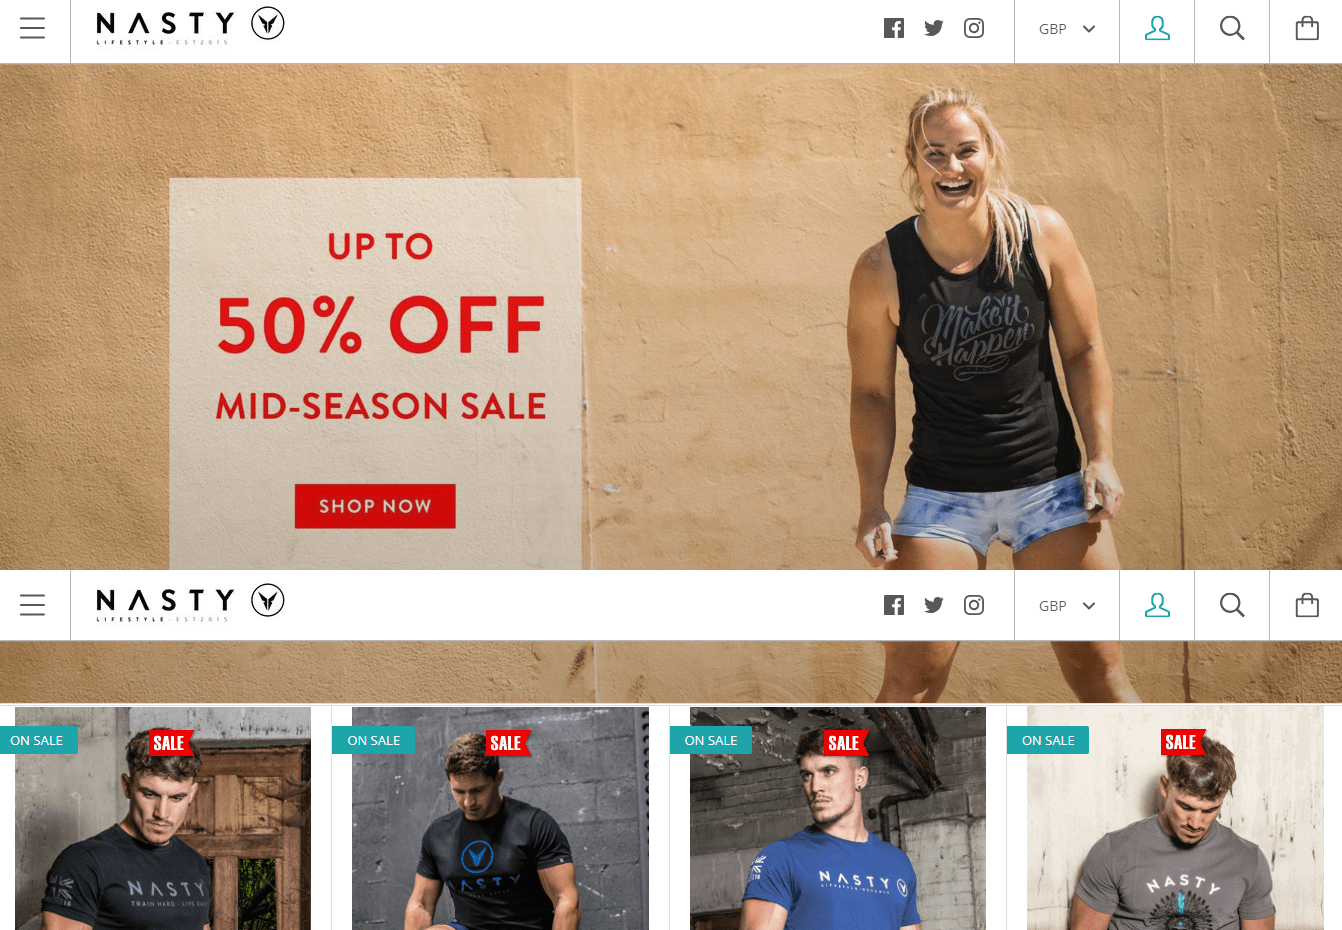 6e0877f6946 15 Niche Ecommerce Business Ideas Proven To Work (2019)